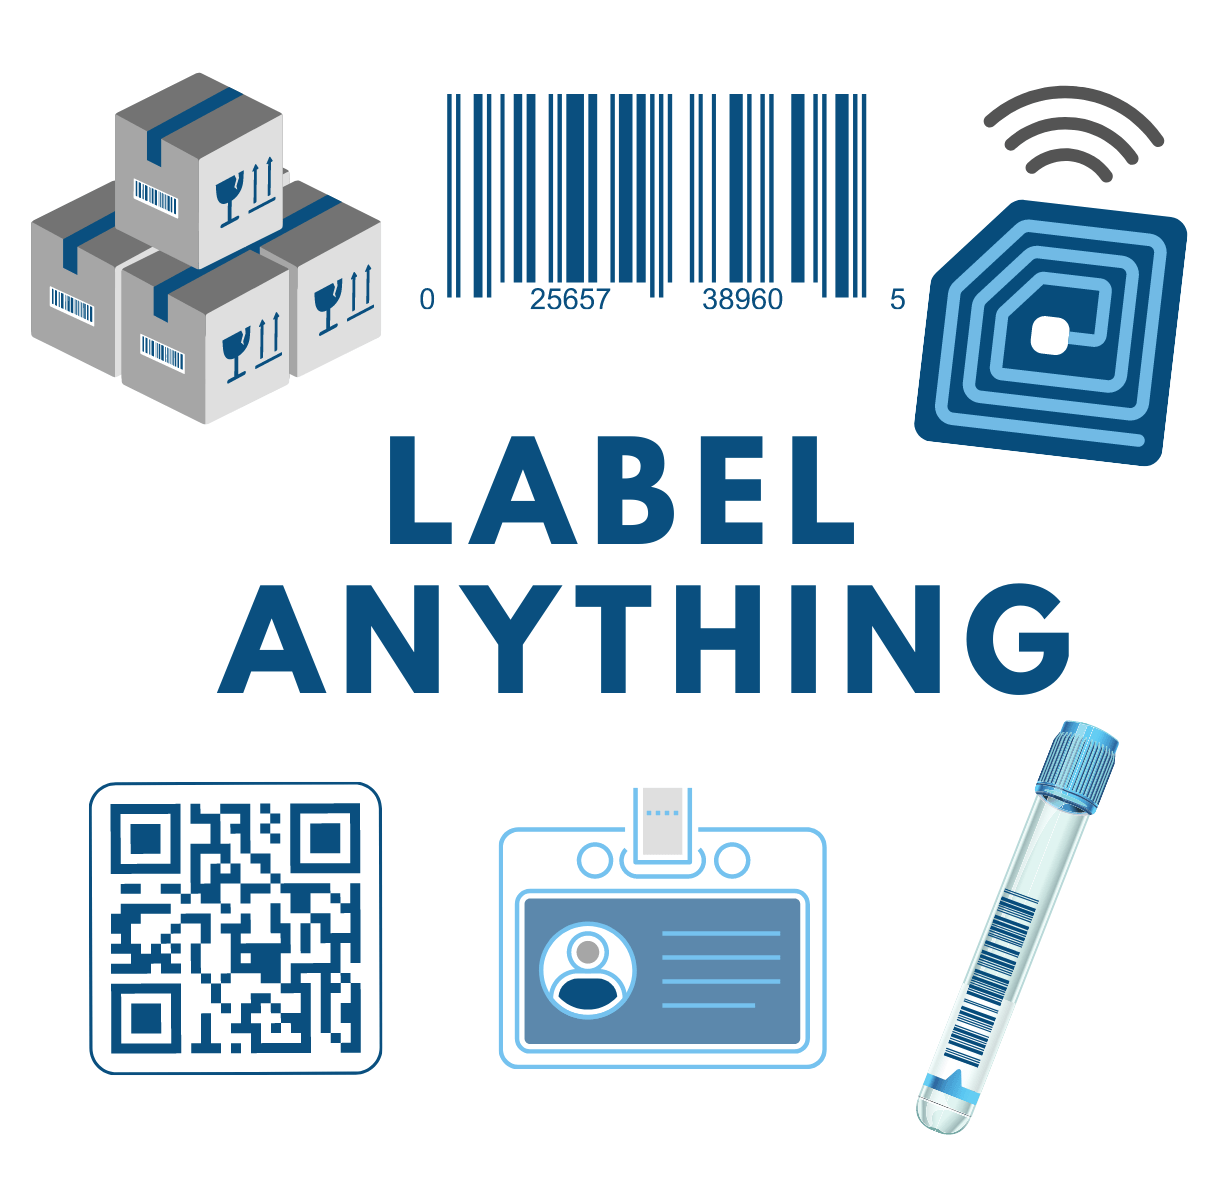 Label Anything